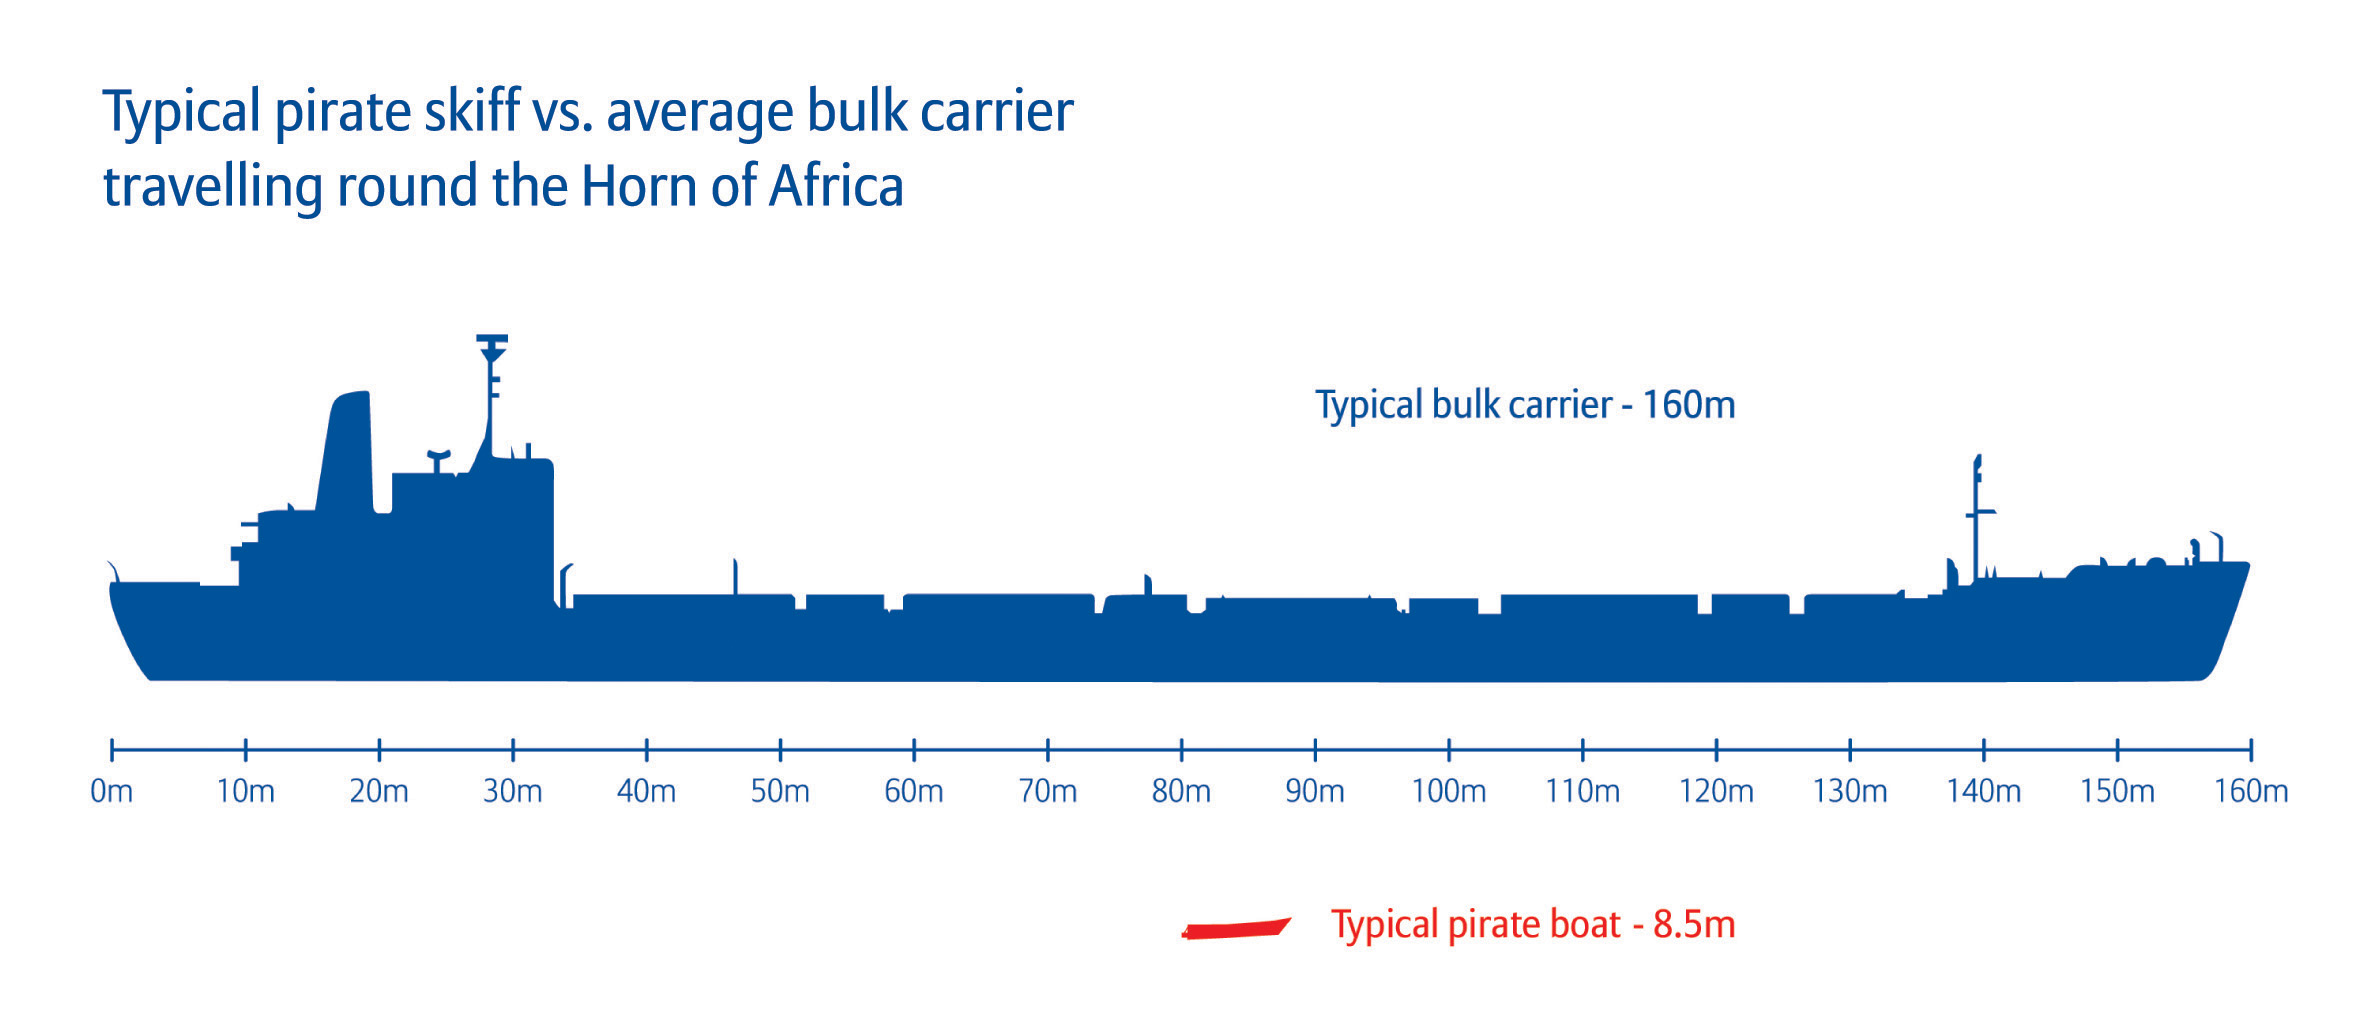 allianz_piracy_study_skiff_vs_carrier_size